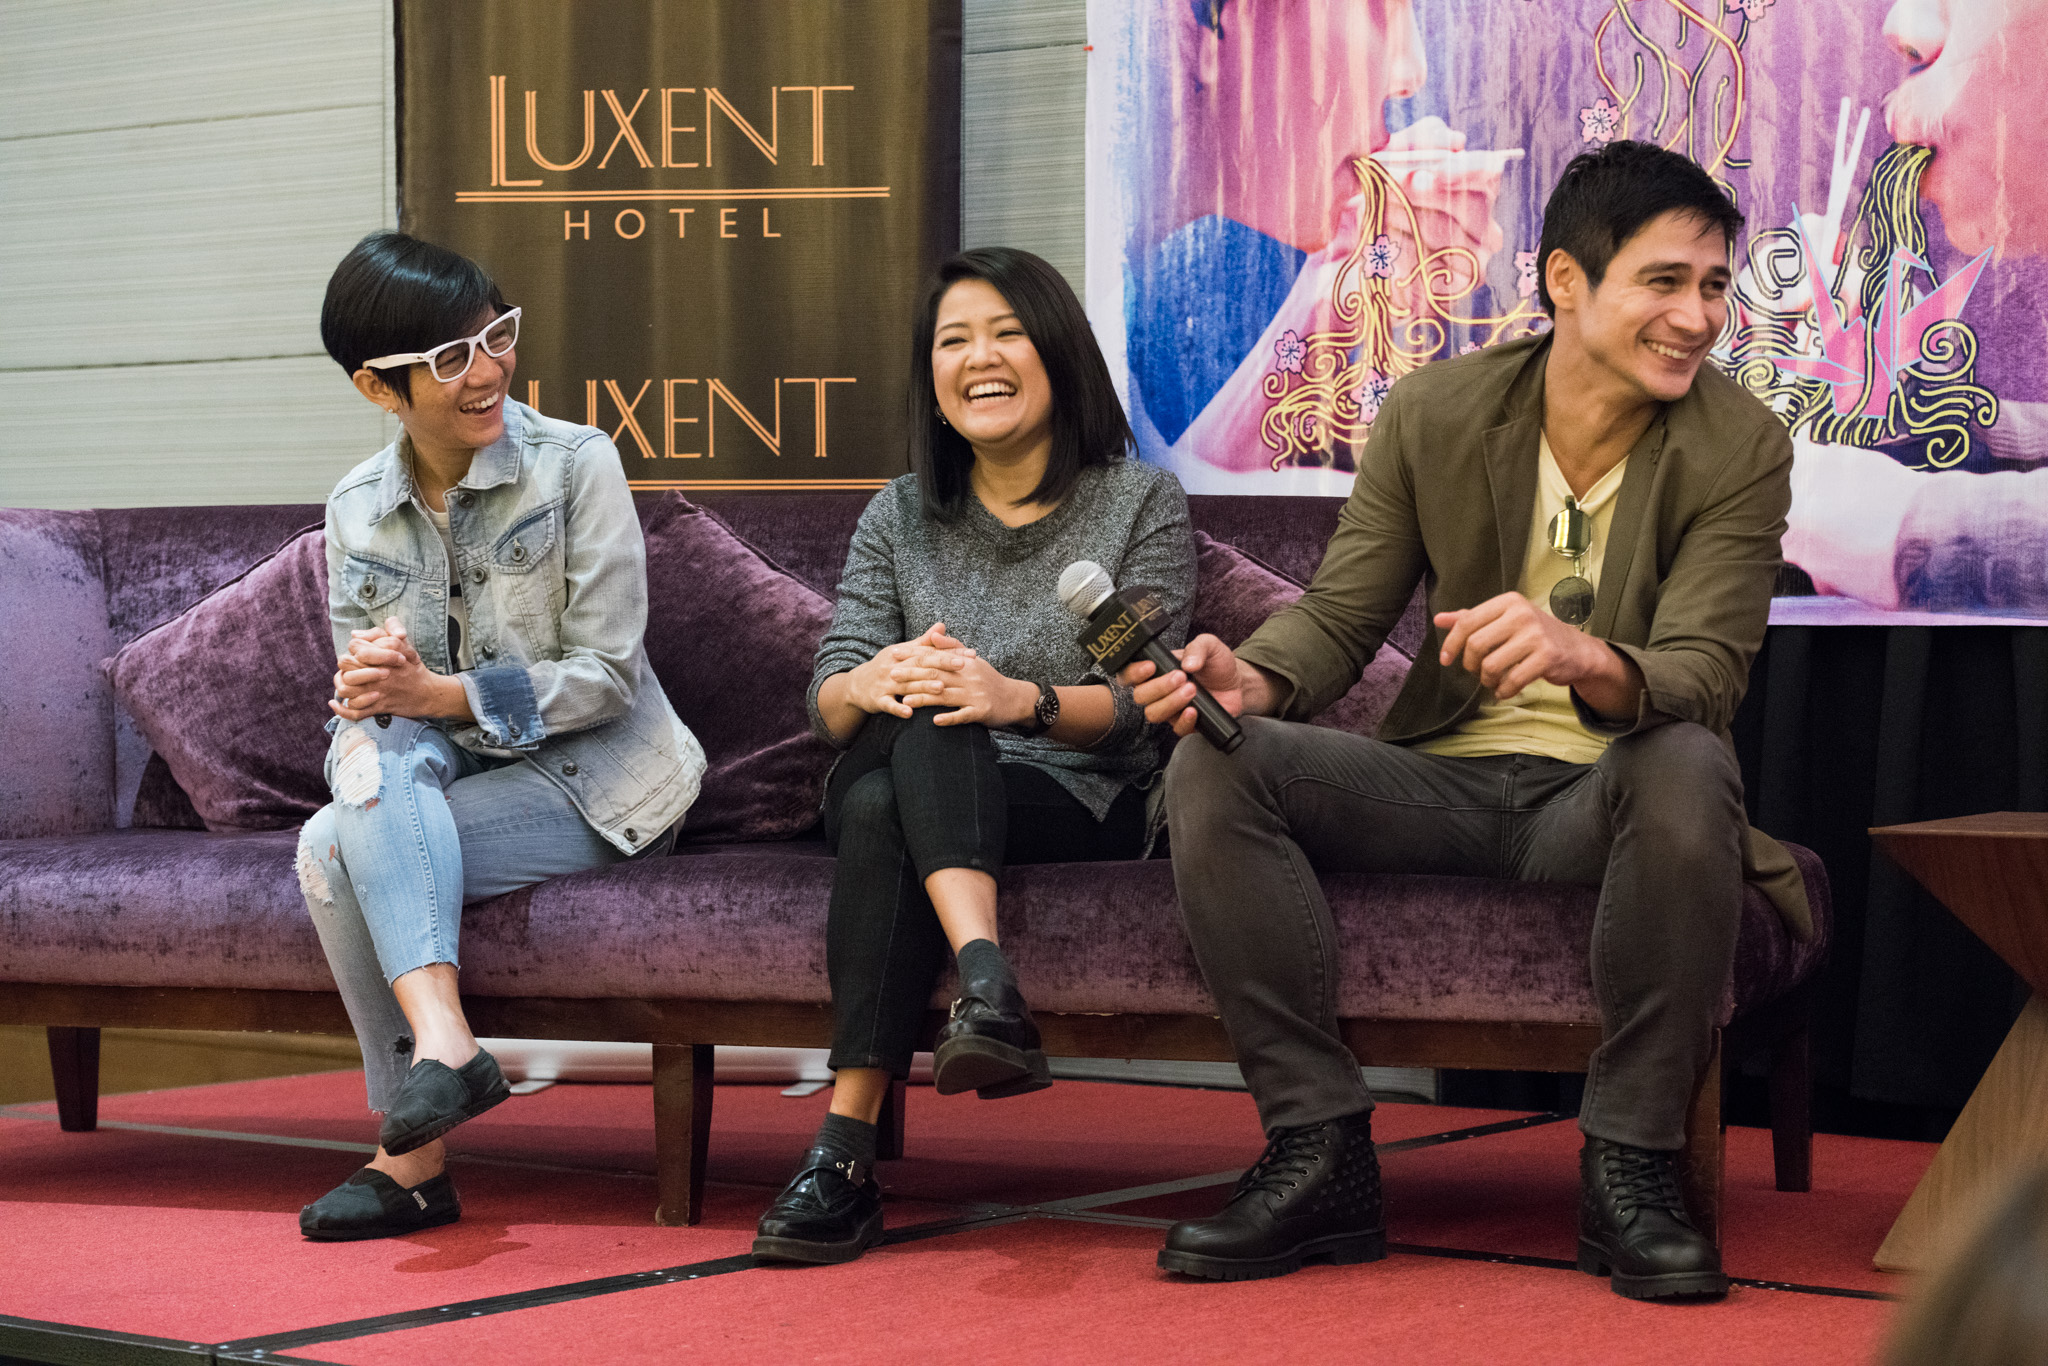 ANTI-PIRACY. Director Sigrid Andrea Bernardo and producer Piolo Pascual, pictured here with producer Joyce Bernal at the film's presscon, have spoken against sharing and uploading the film online. Photo by Martin San Diego/Rappler